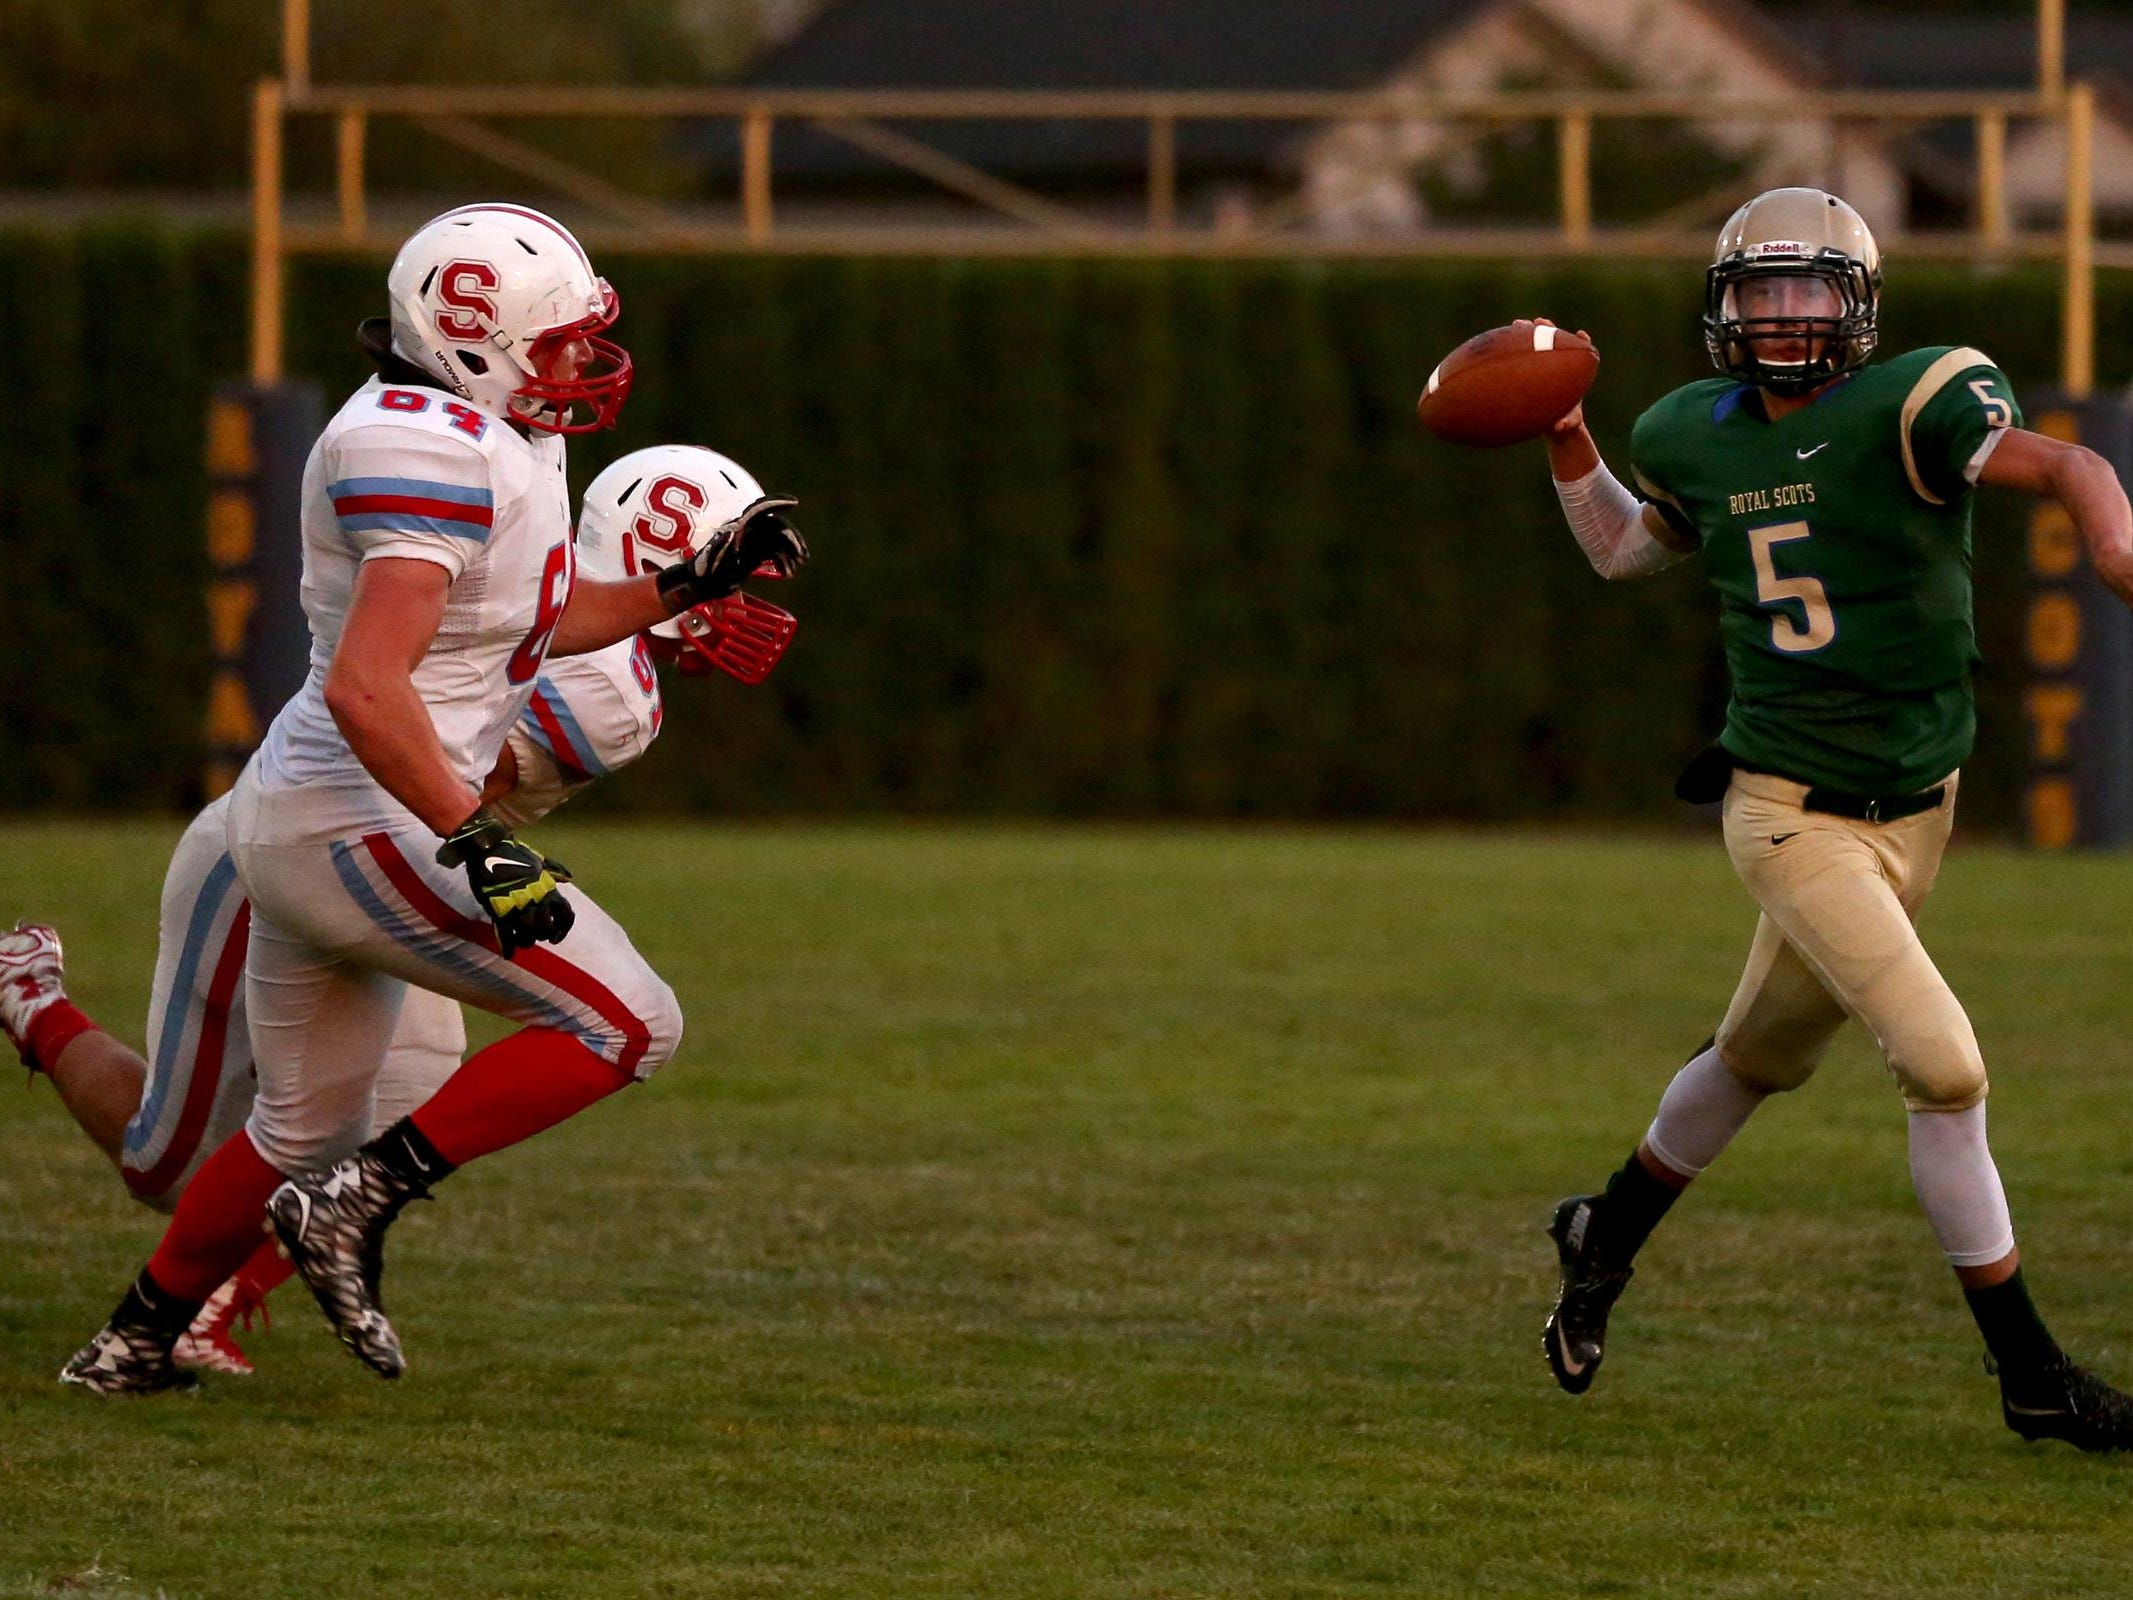 McKay's Matthew Ritchie (5) looks to pass the ball while being chased by South Salem's Justin Peace (64) and Vincent Villarreal (51) in the first half of the South Salem vs. McKay football game at McKay High School in Salem on Friday, Sept. 4, 2015. South Salem leads 26-7 at the half.